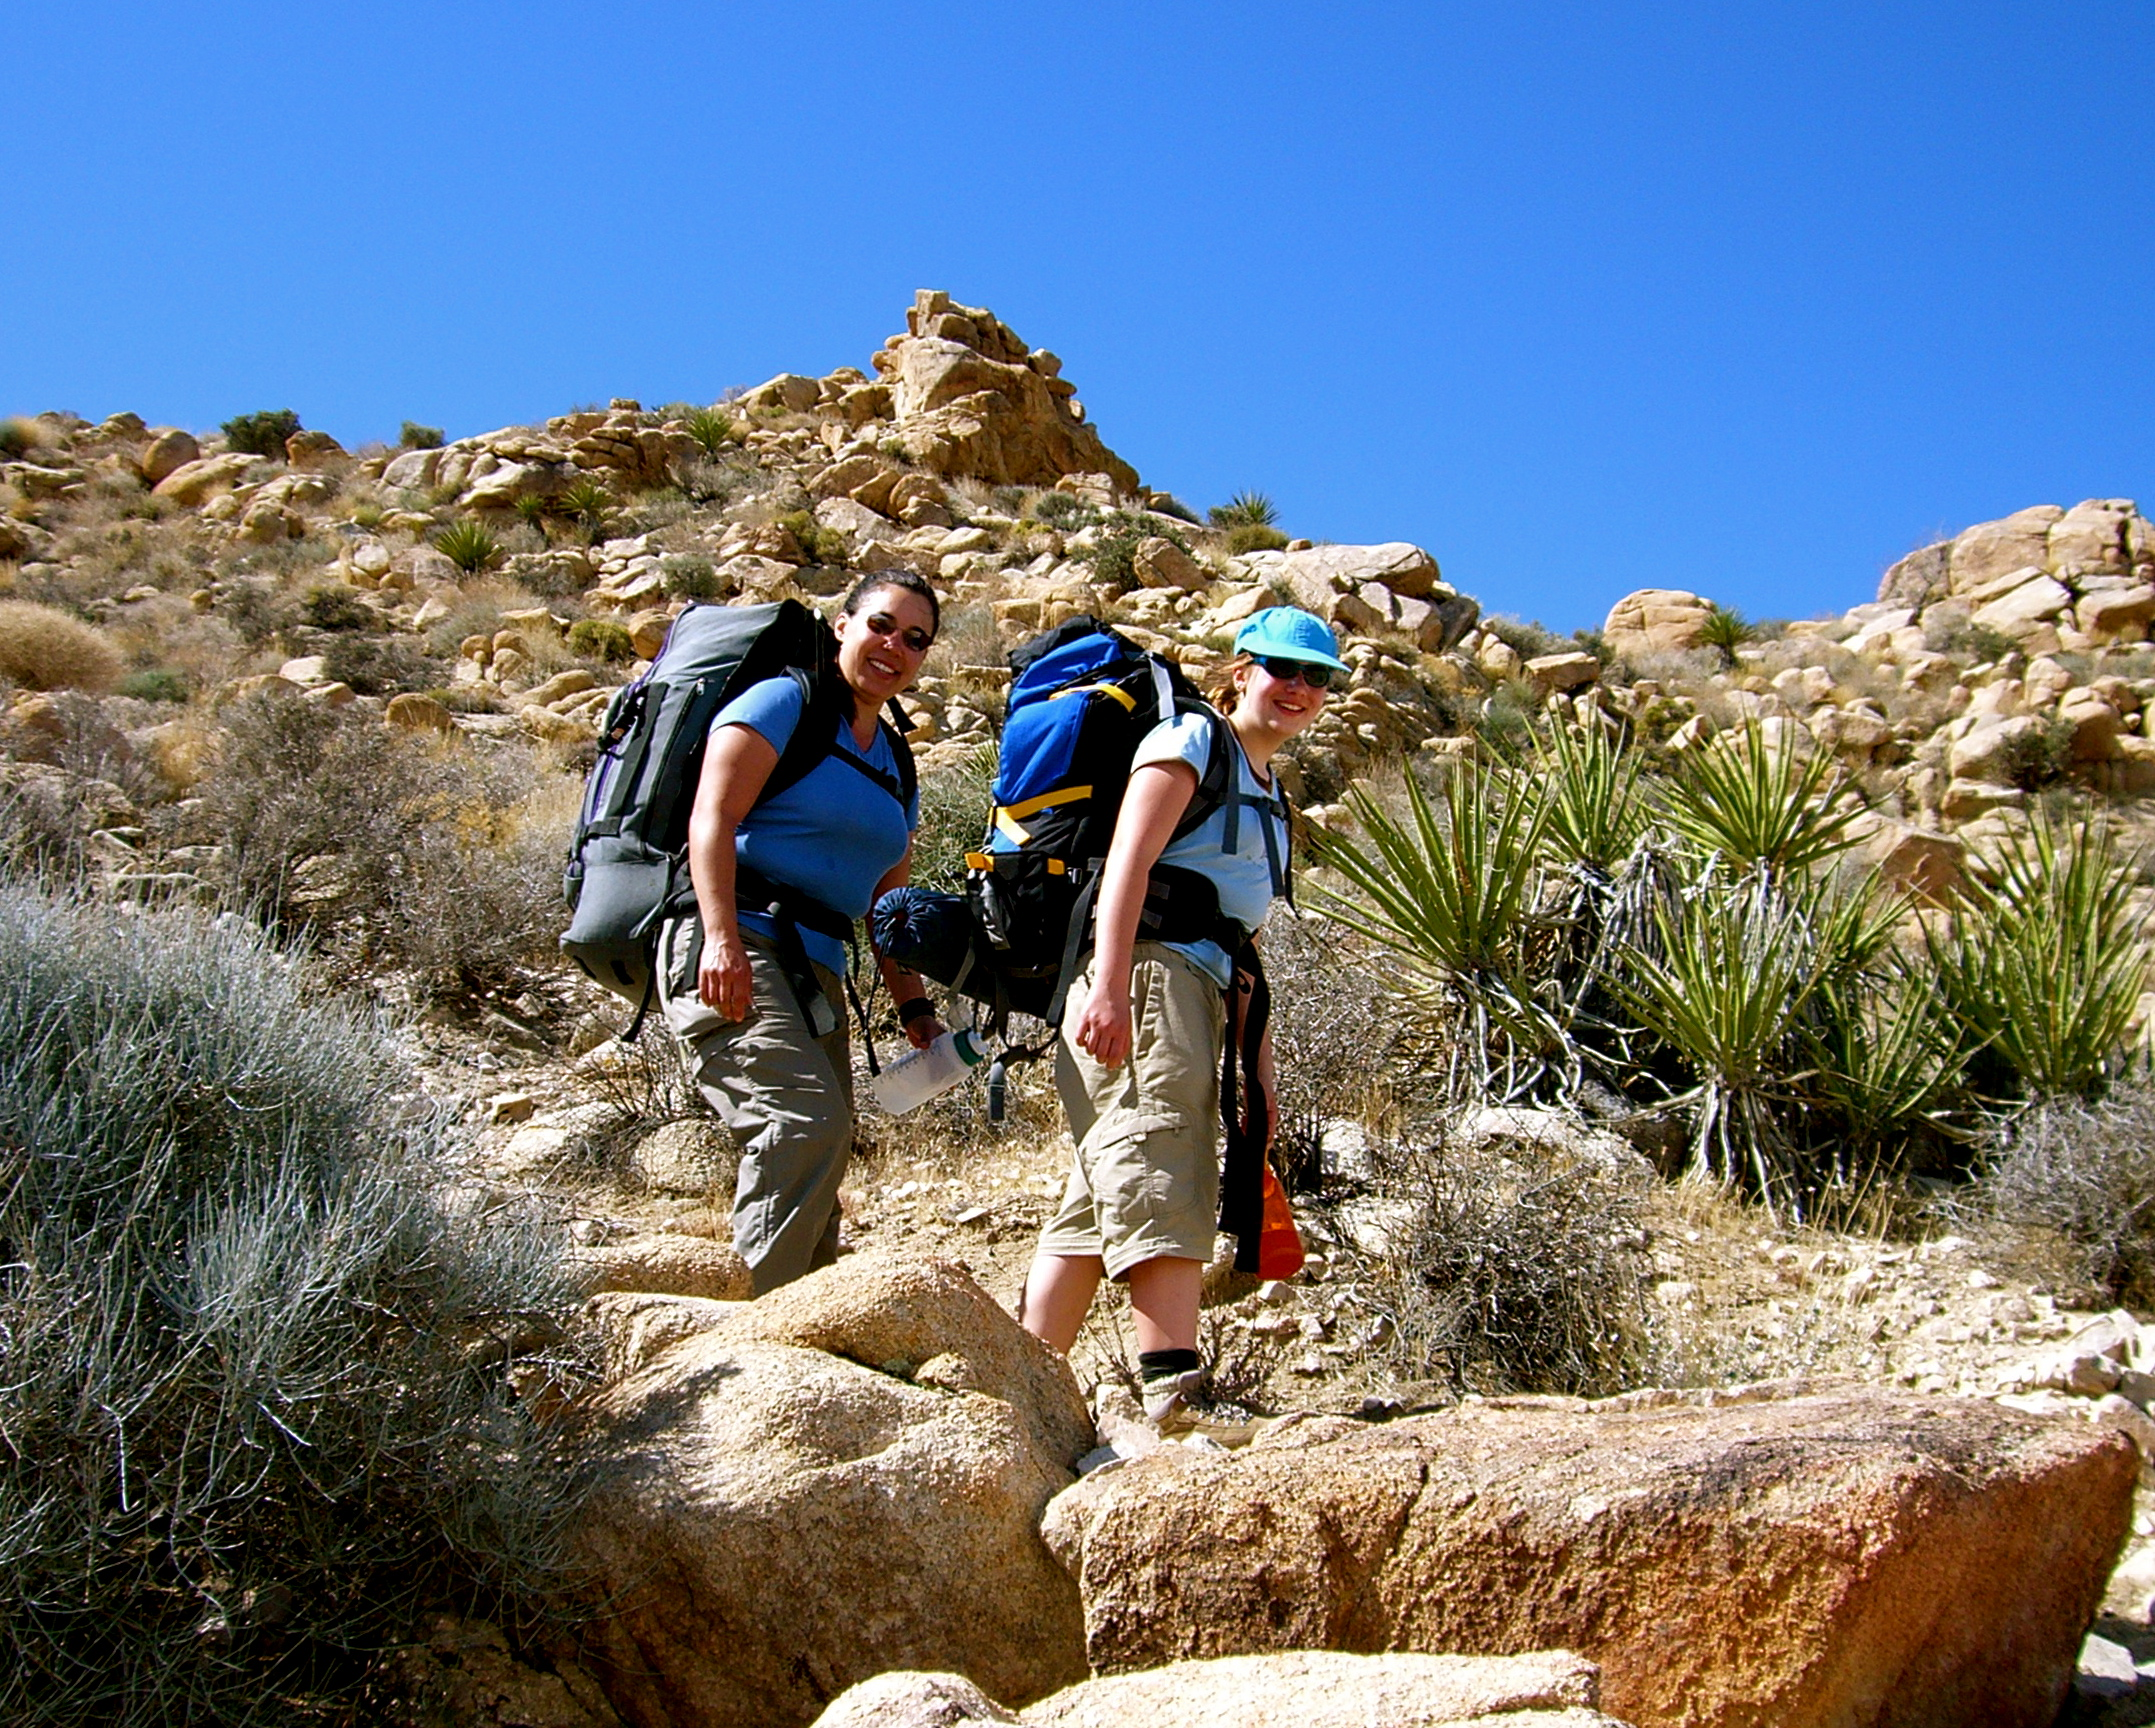 Kristina & Morgan backpacking after rock climbing in Joshua Tree National Park, CA. March 2006. Morgan turns 12 yrs old!